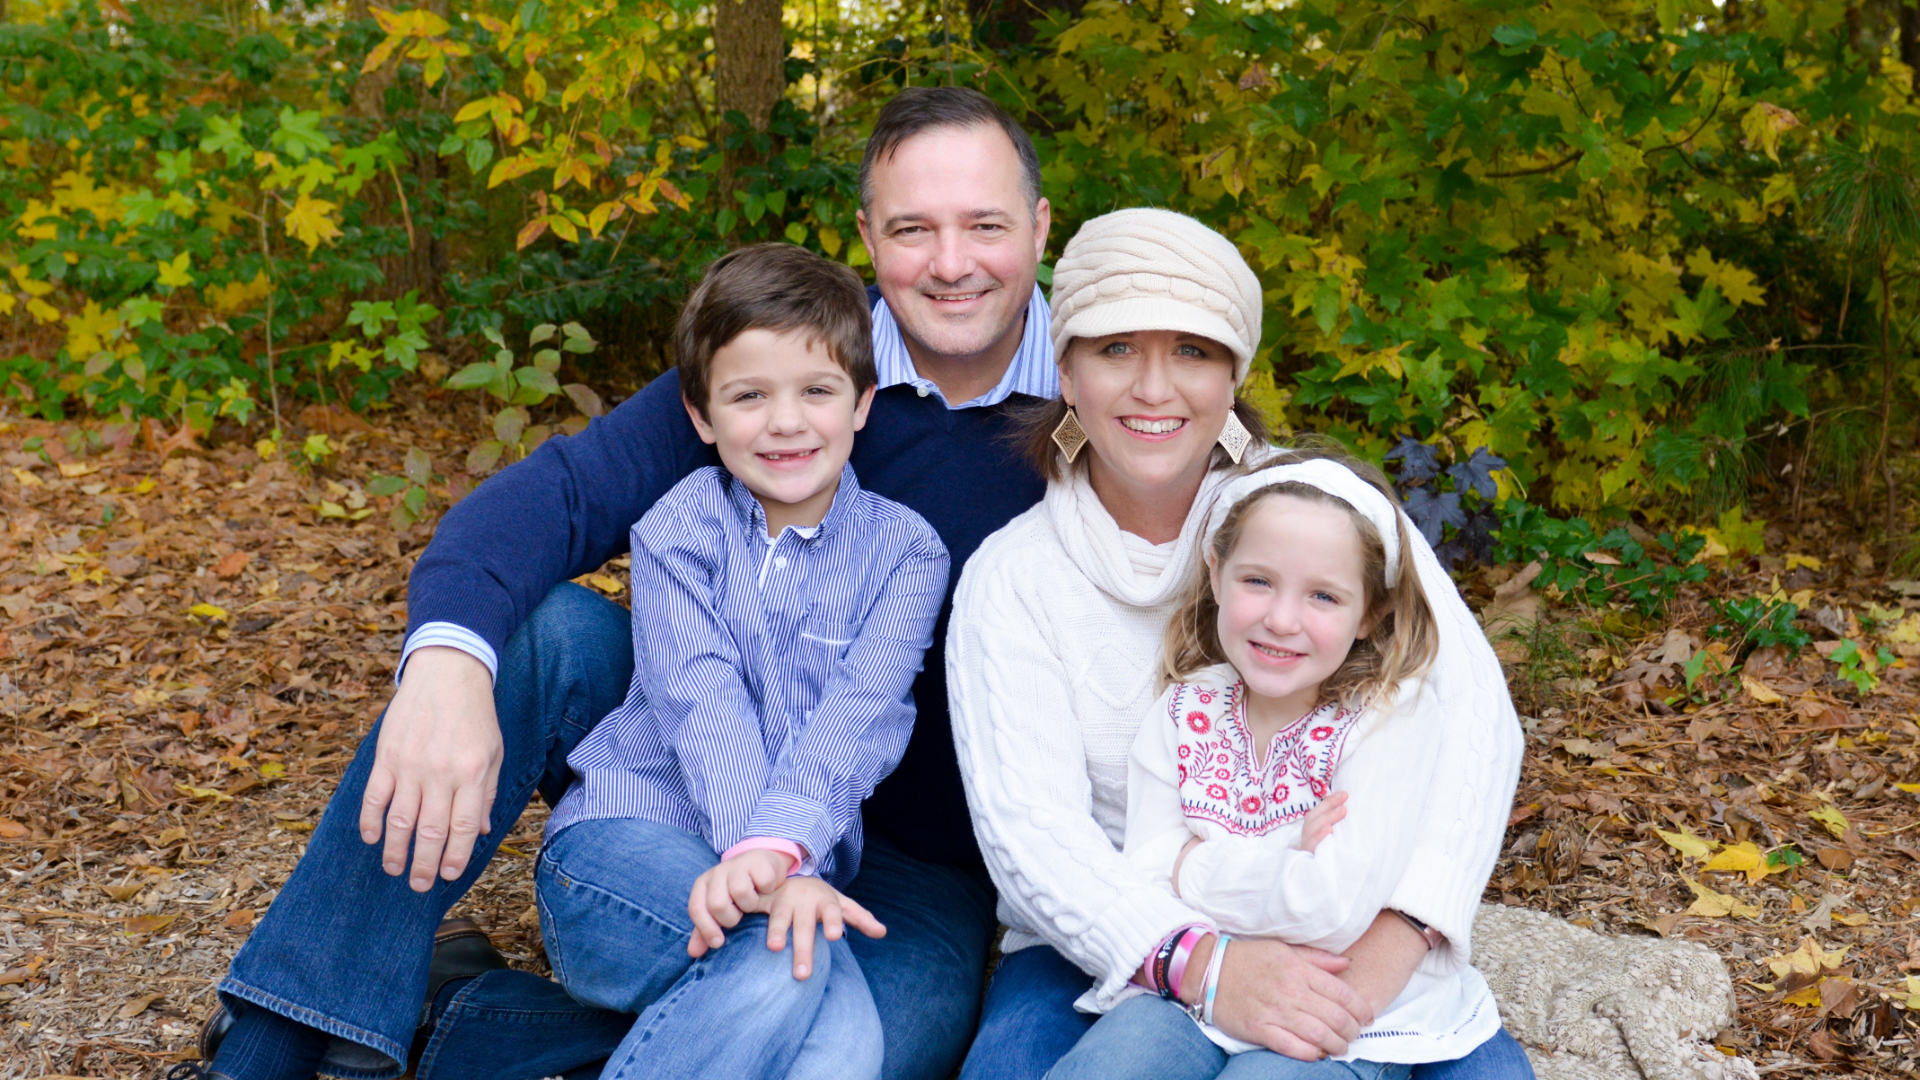 46-year old Amanda Edwards has been fighting breast cancer for 6 years. When doctors found out that the cancer metastasized in her skull and brain lining, she received front line treatments right away.